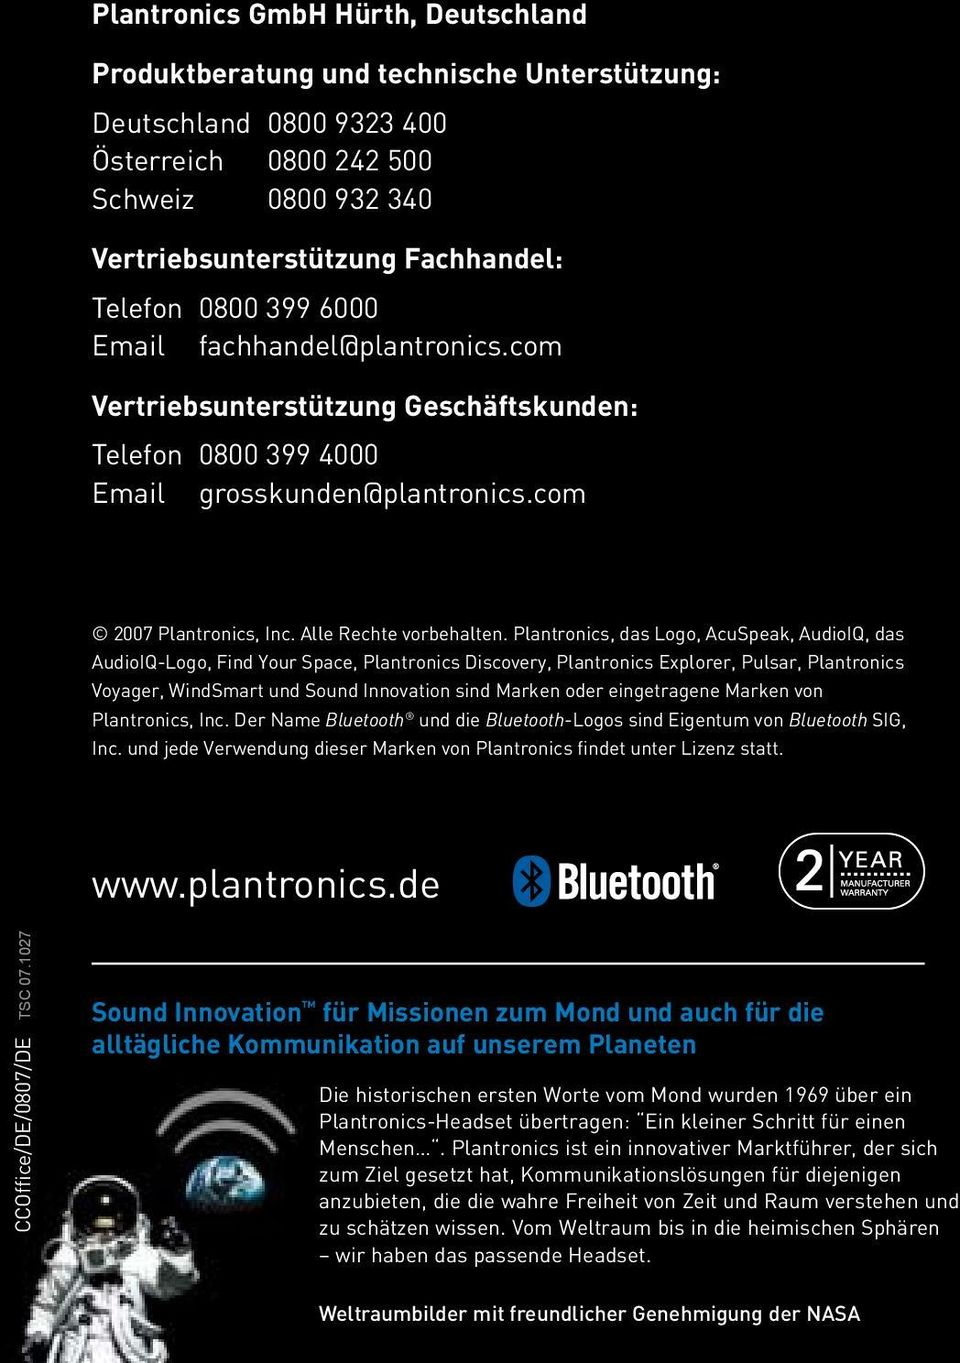 Plantronics, das Logo, AcuSpeak, AudioIQ, das AudioIQ-Logo, Find Your Space, Plantronics Discovery, Plantronics Explorer, Pulsar, Plantronics Voyager, WindSmart und Sound Innovation sind Marken oder